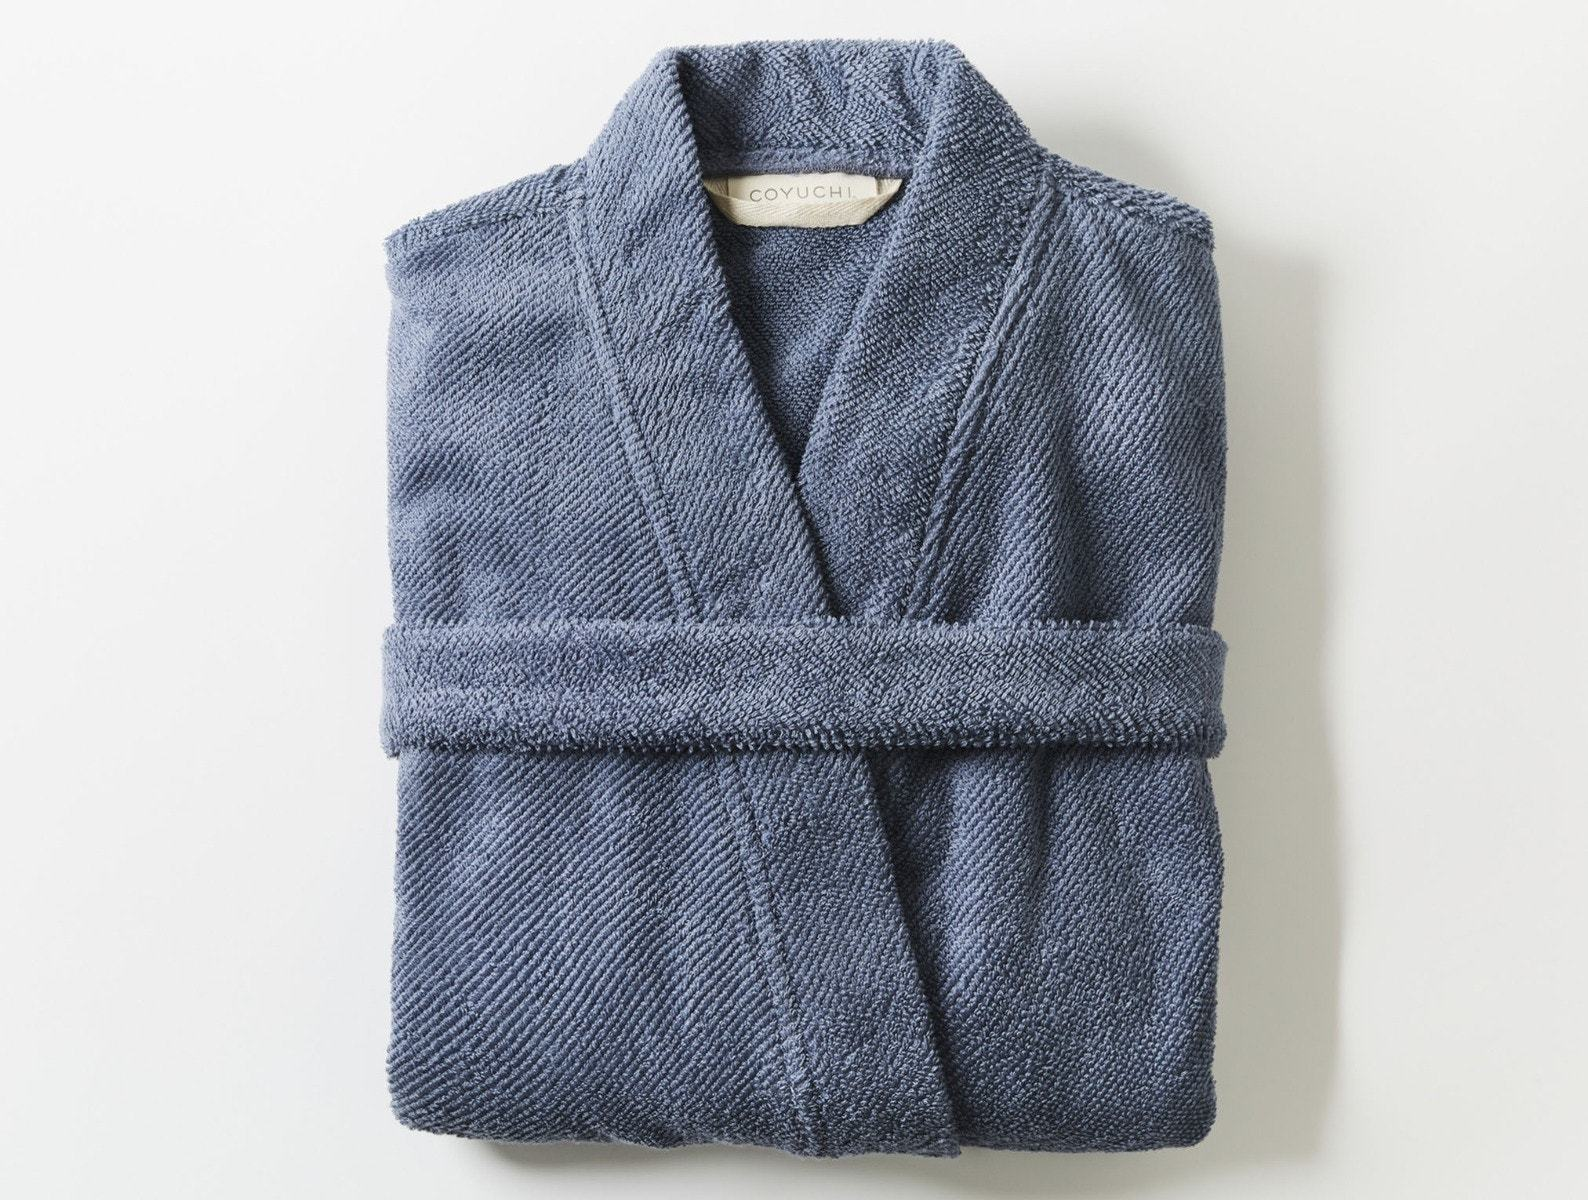 French Blue Air Weight Unisex Organic Robe by Coyuchi